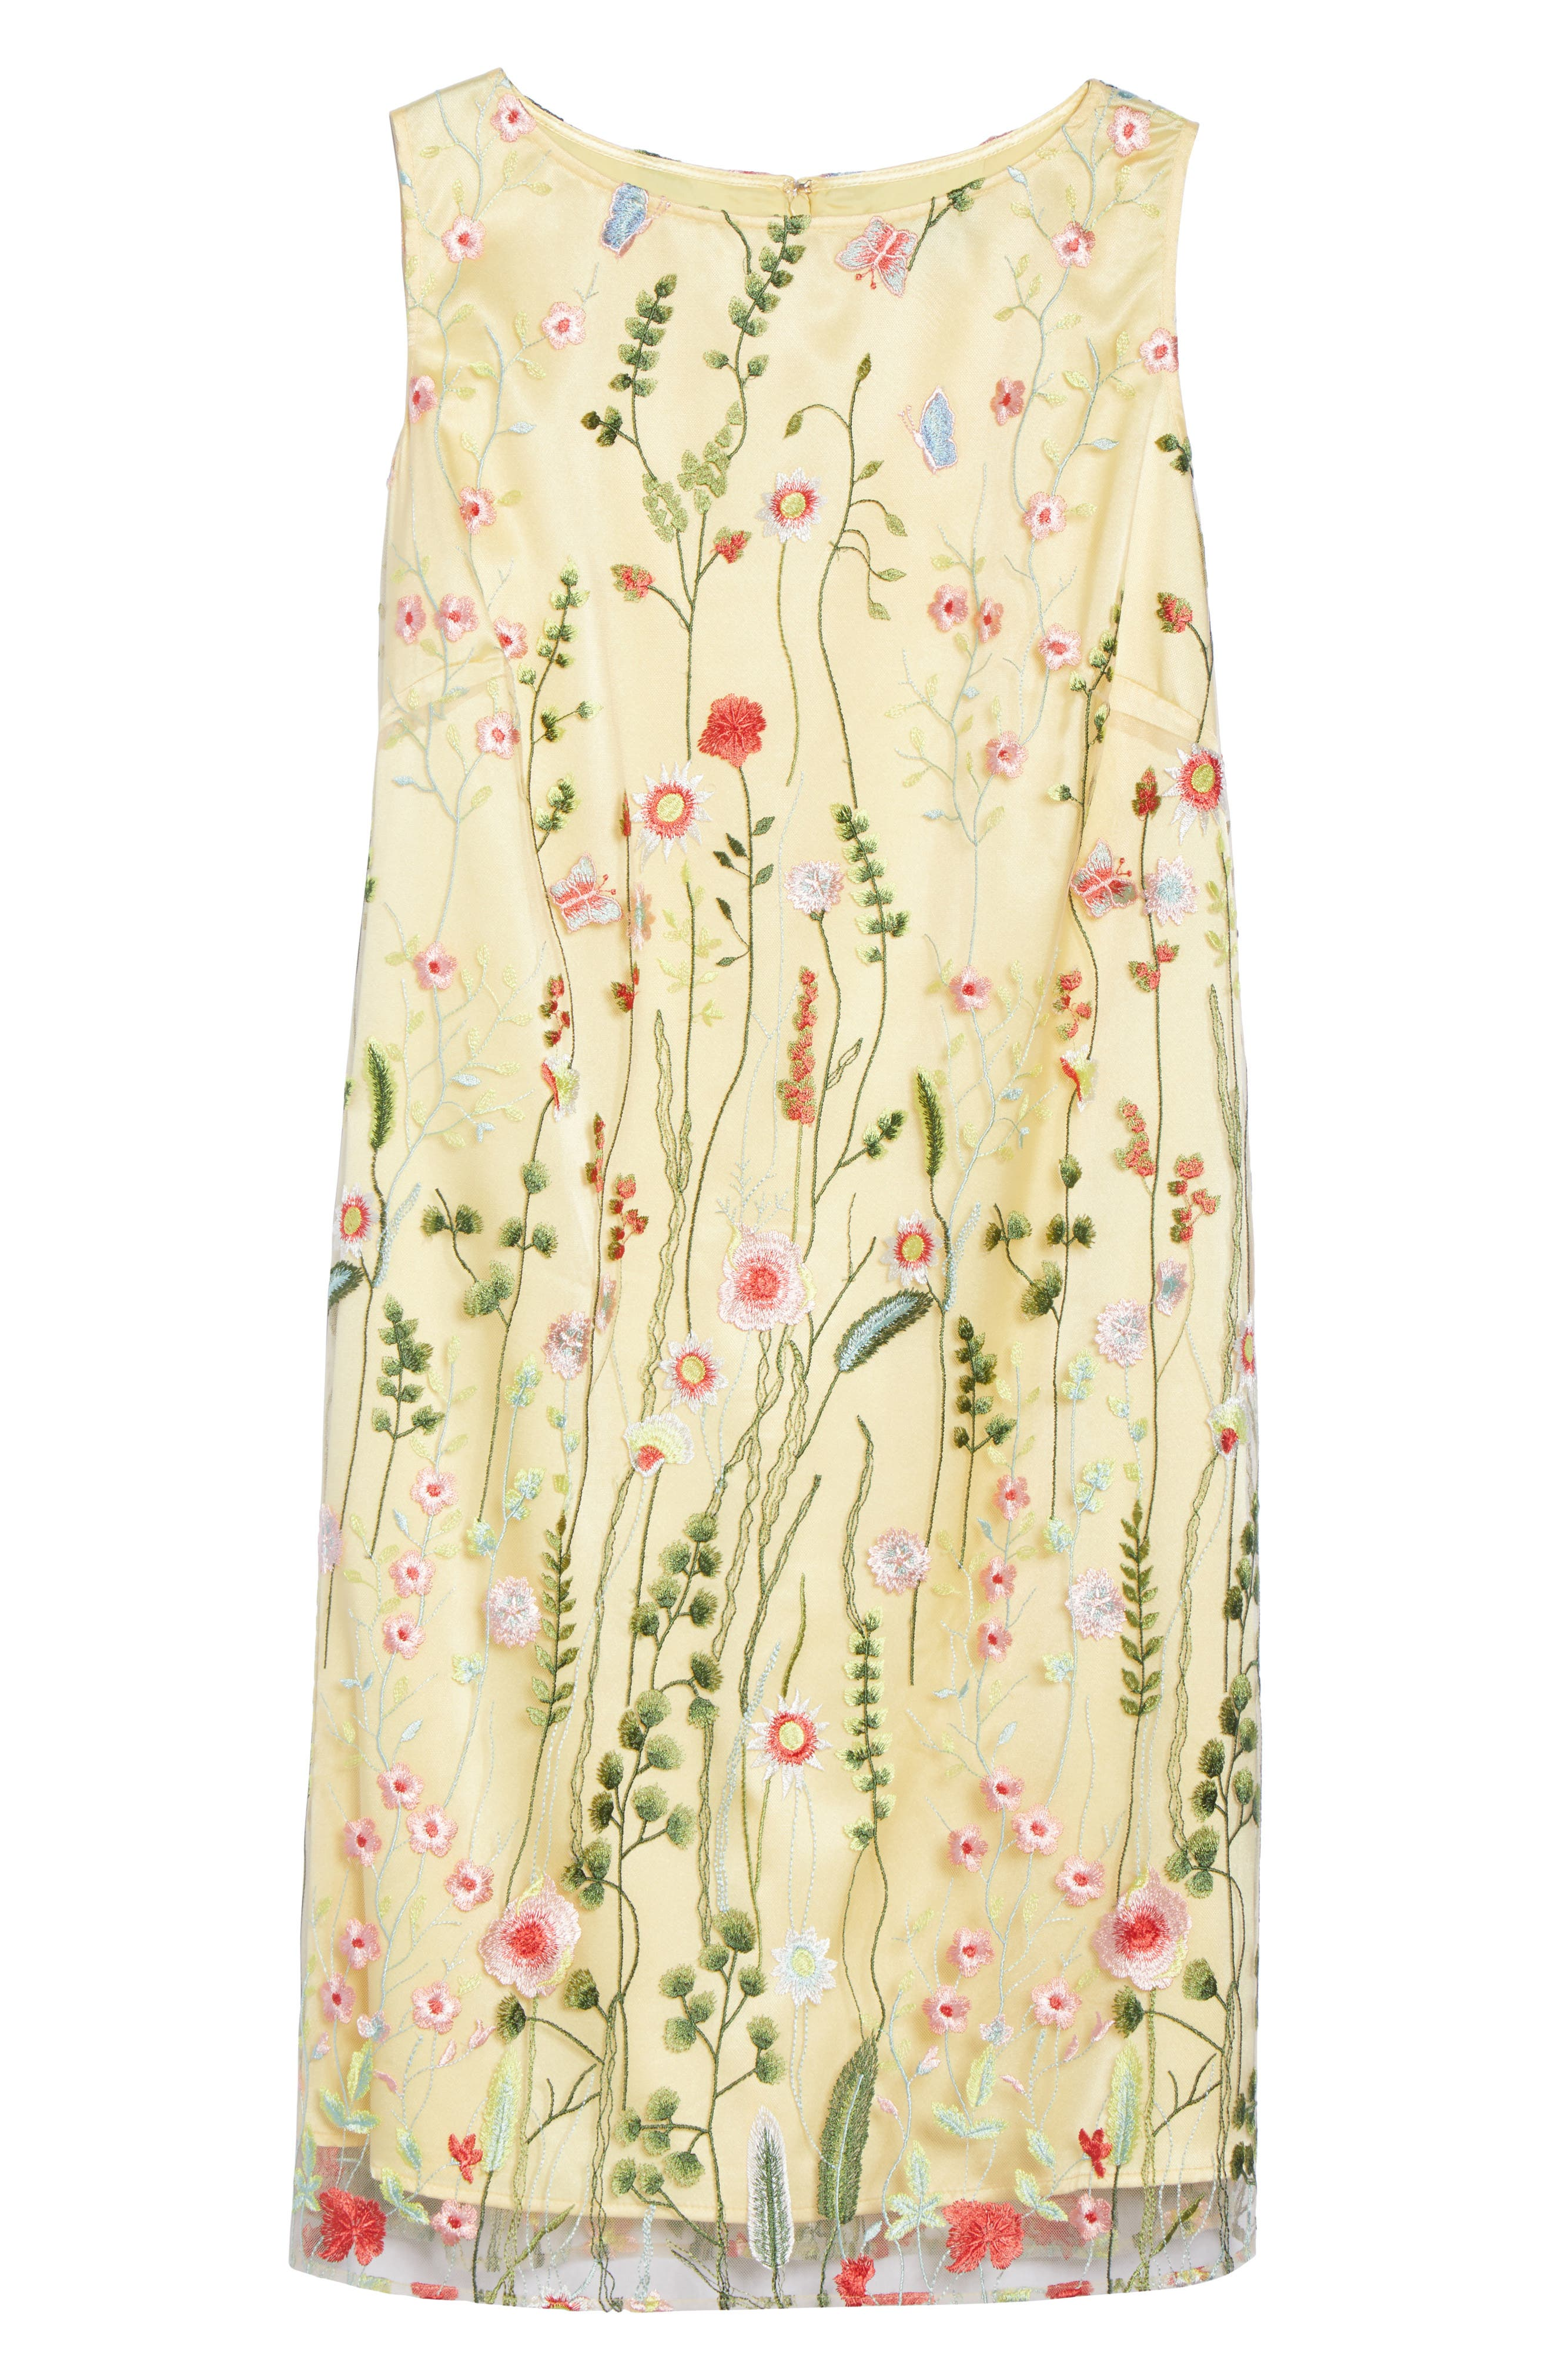 Floral Embroidered Shift Dress,                             Alternate thumbnail 6, color,                             798